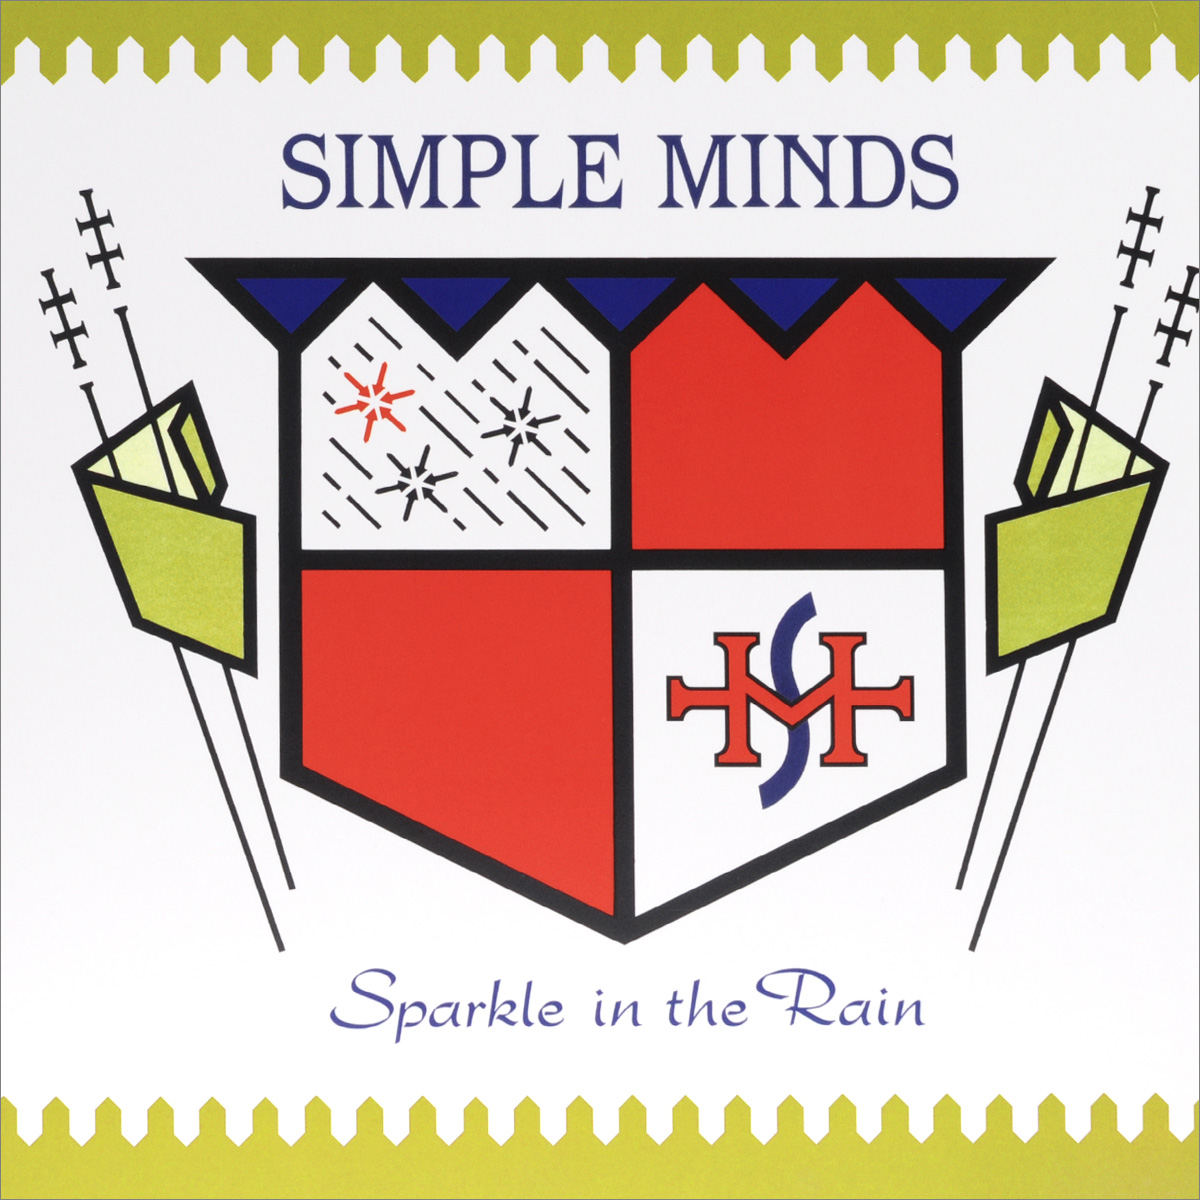 Simple Minds Simple Minds Sparkle In The Rain(LP) нить желаний telle quelle нить желаний